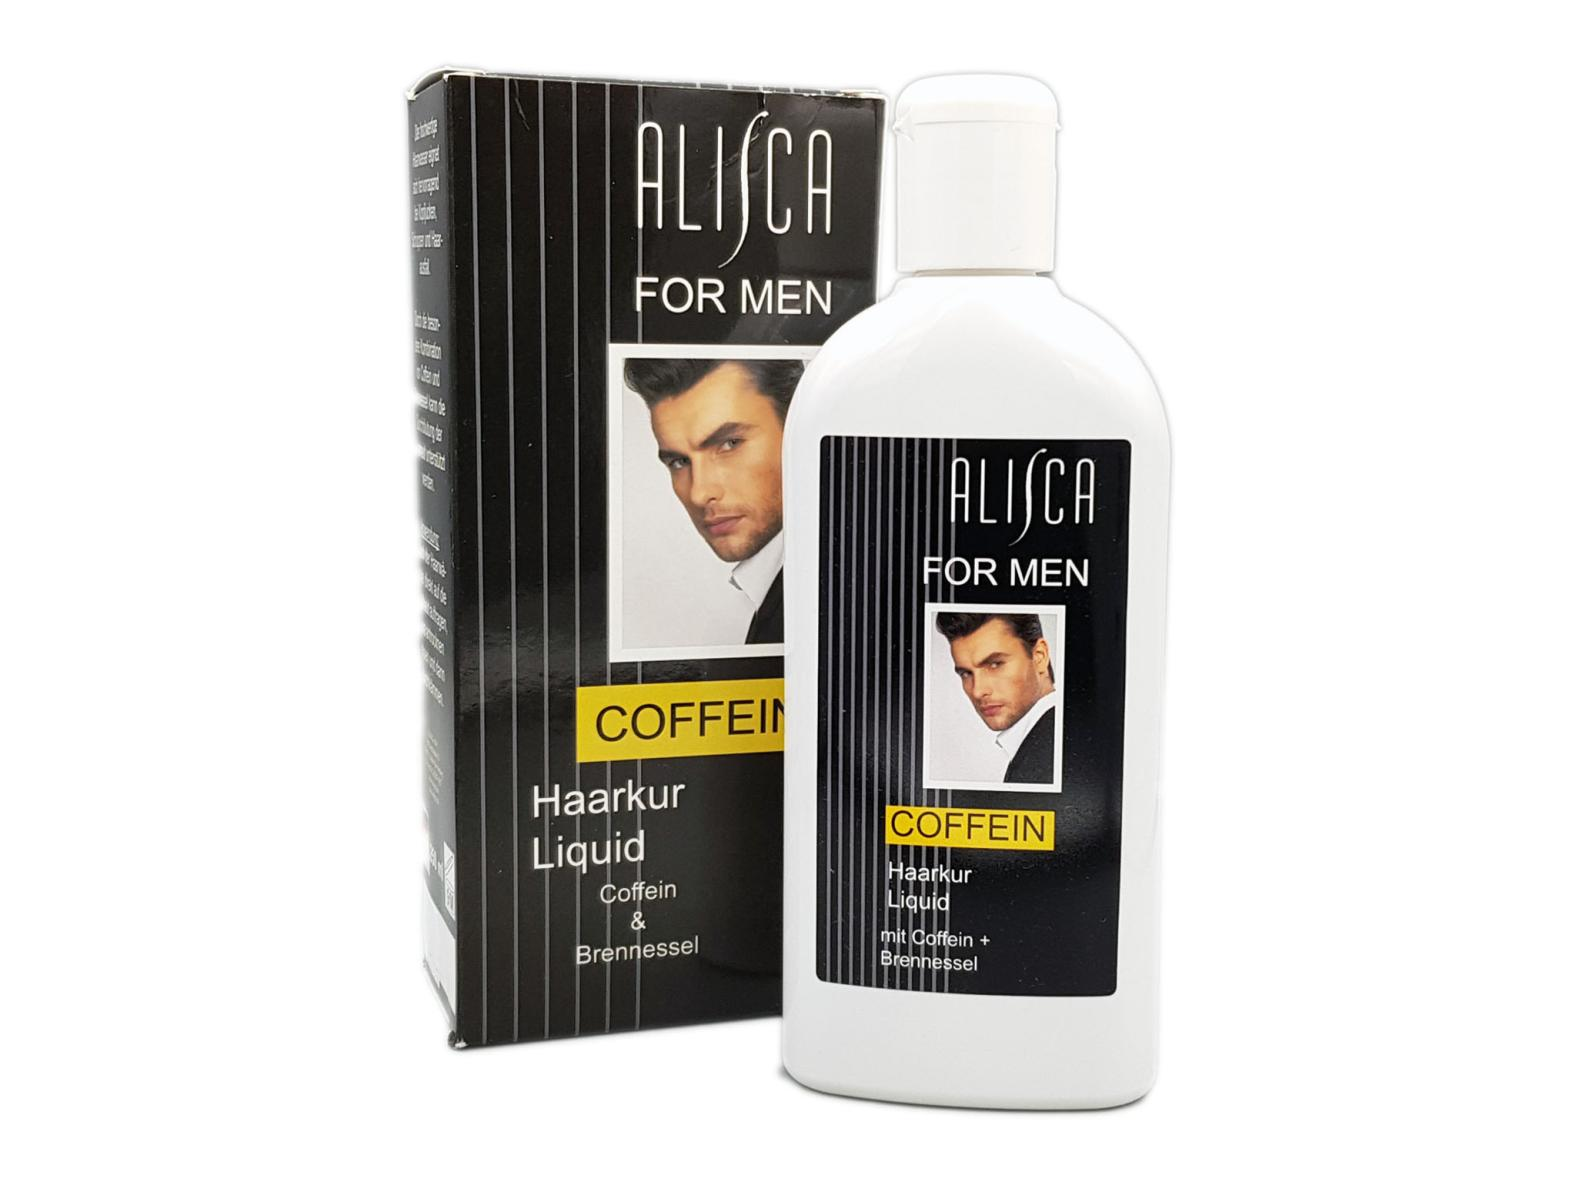 ALISCA® Haarkur Liquid - Coffein - For Men (250 ml)